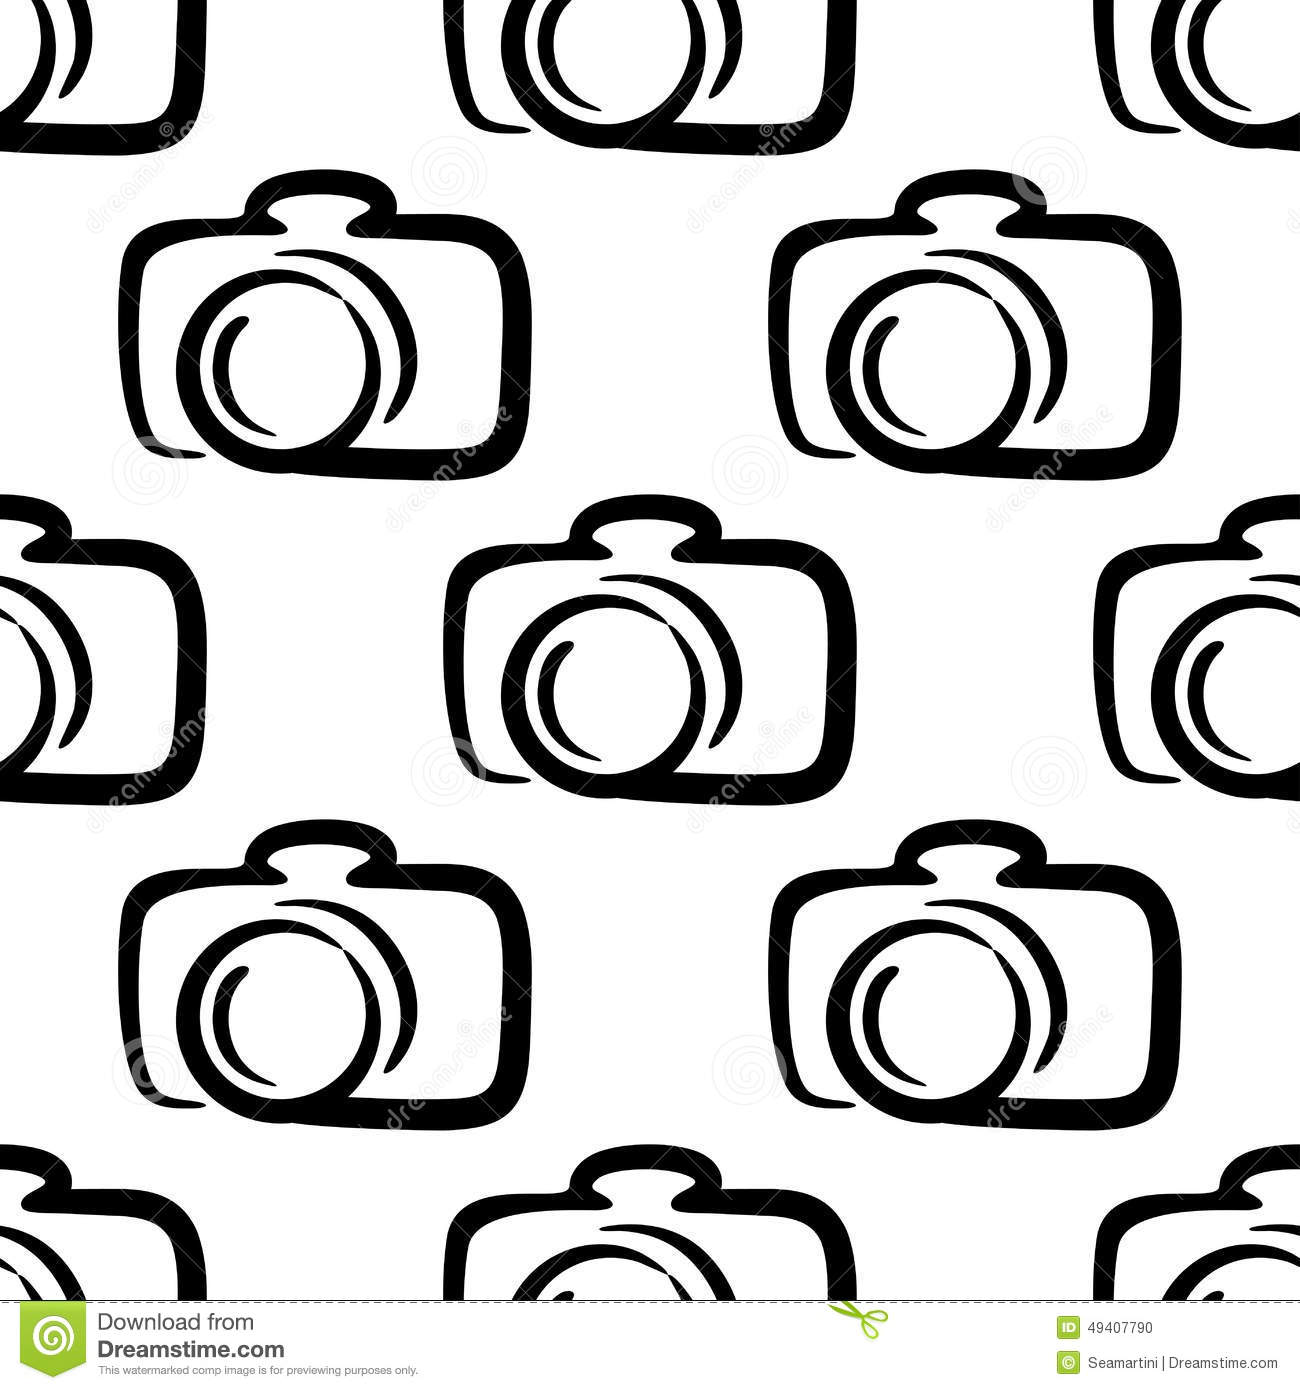 Outline Camera Seamless Pattern Background Stock Vector